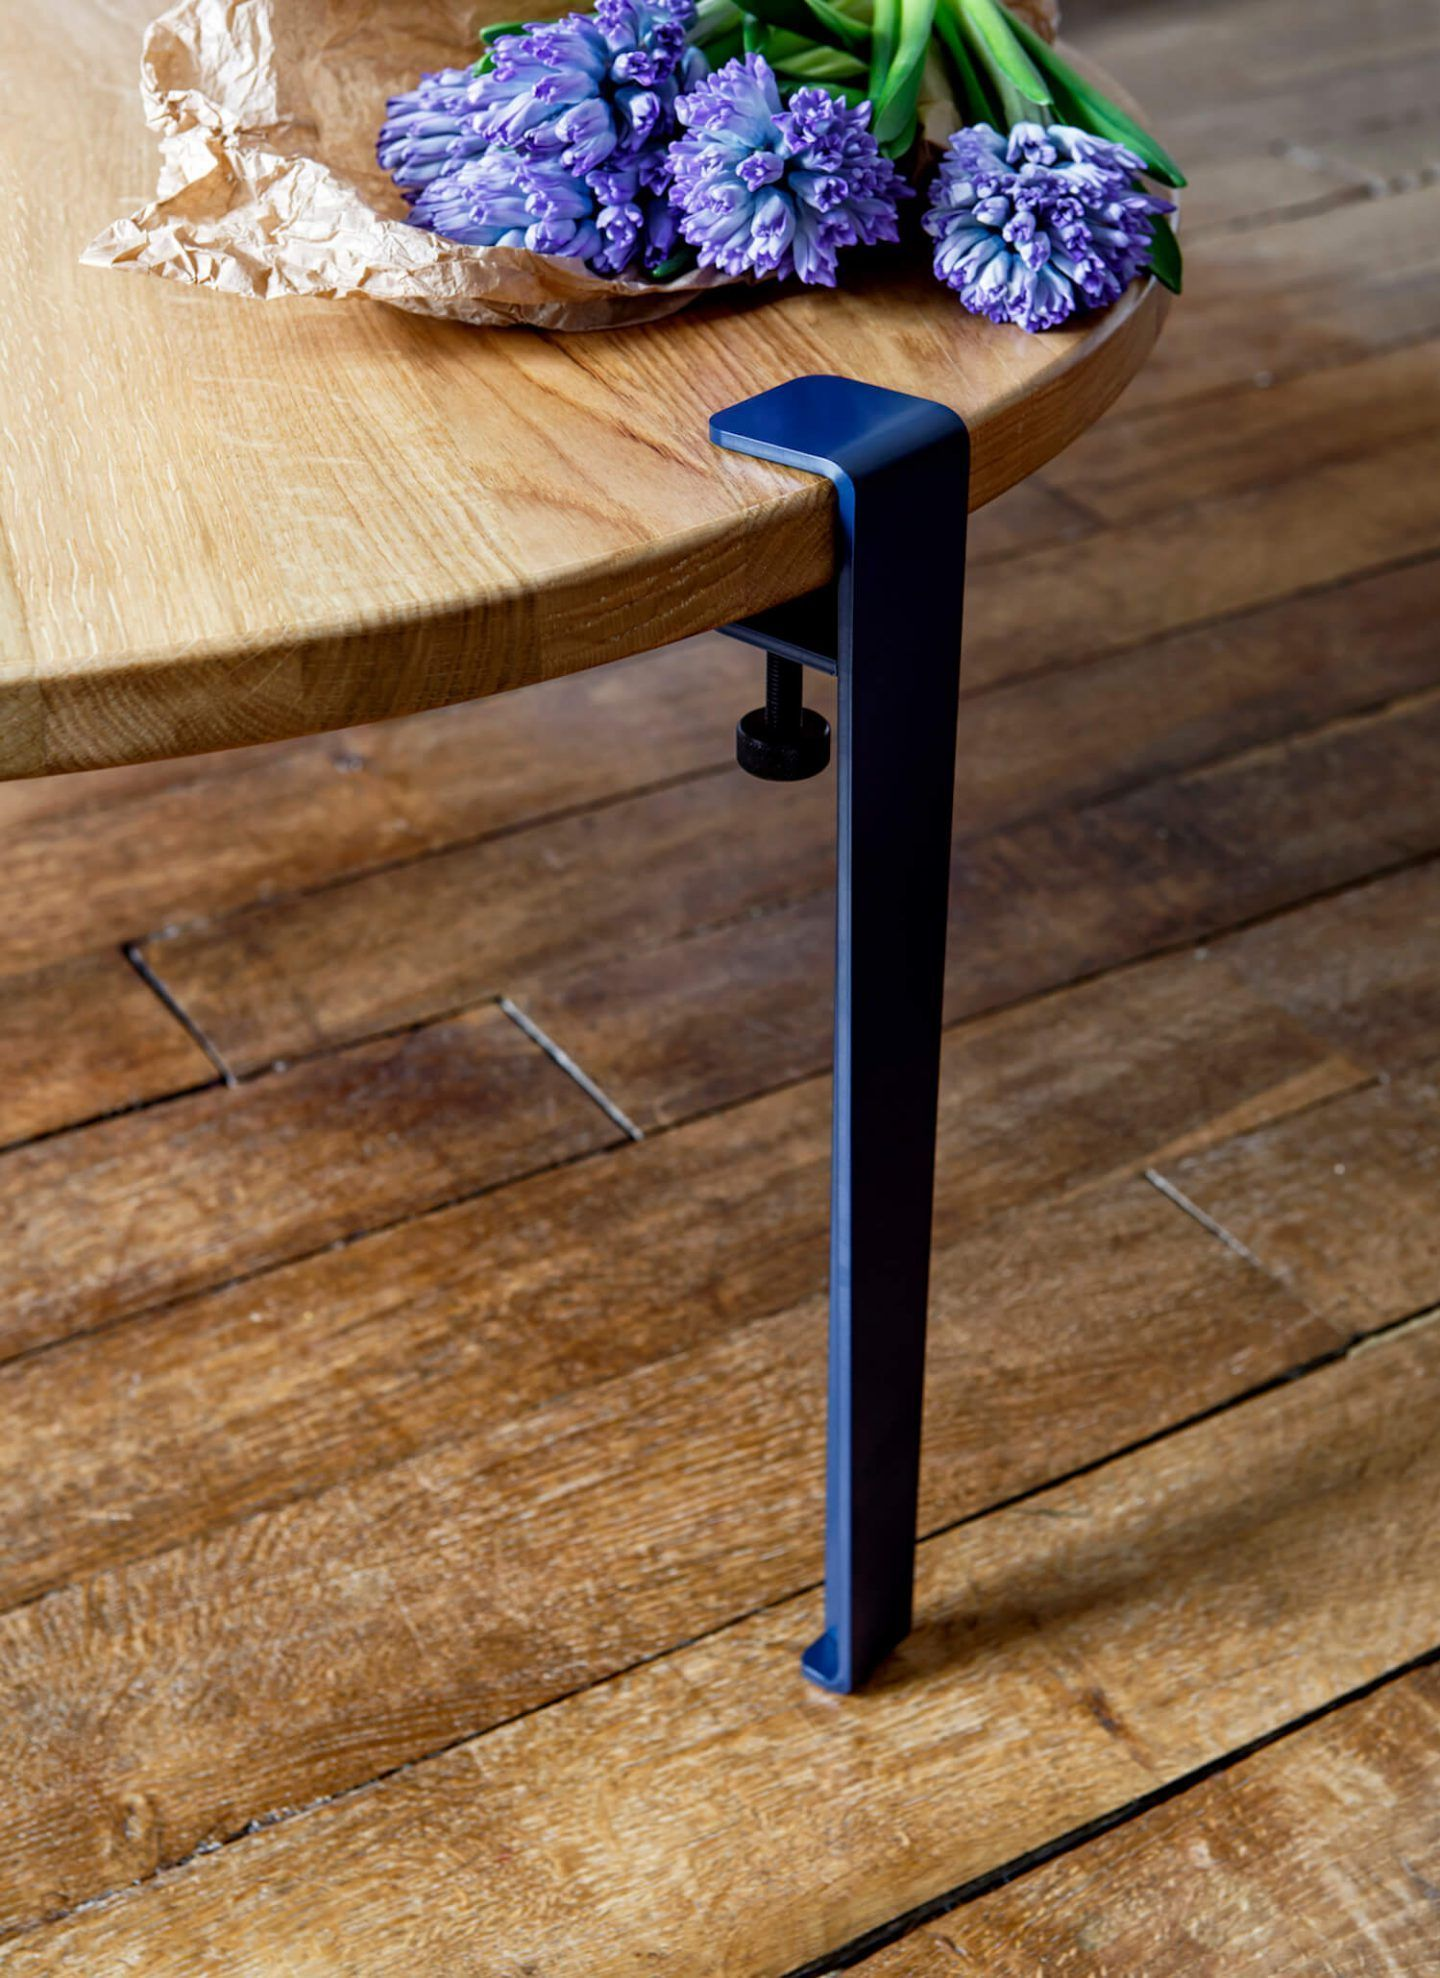 Create Your Own Desk Dining Table Or Side Table Design With These Table Legs Designed By Tiptoe In 2020 Diy Wohnzimmer Bankbeine Tischdesign